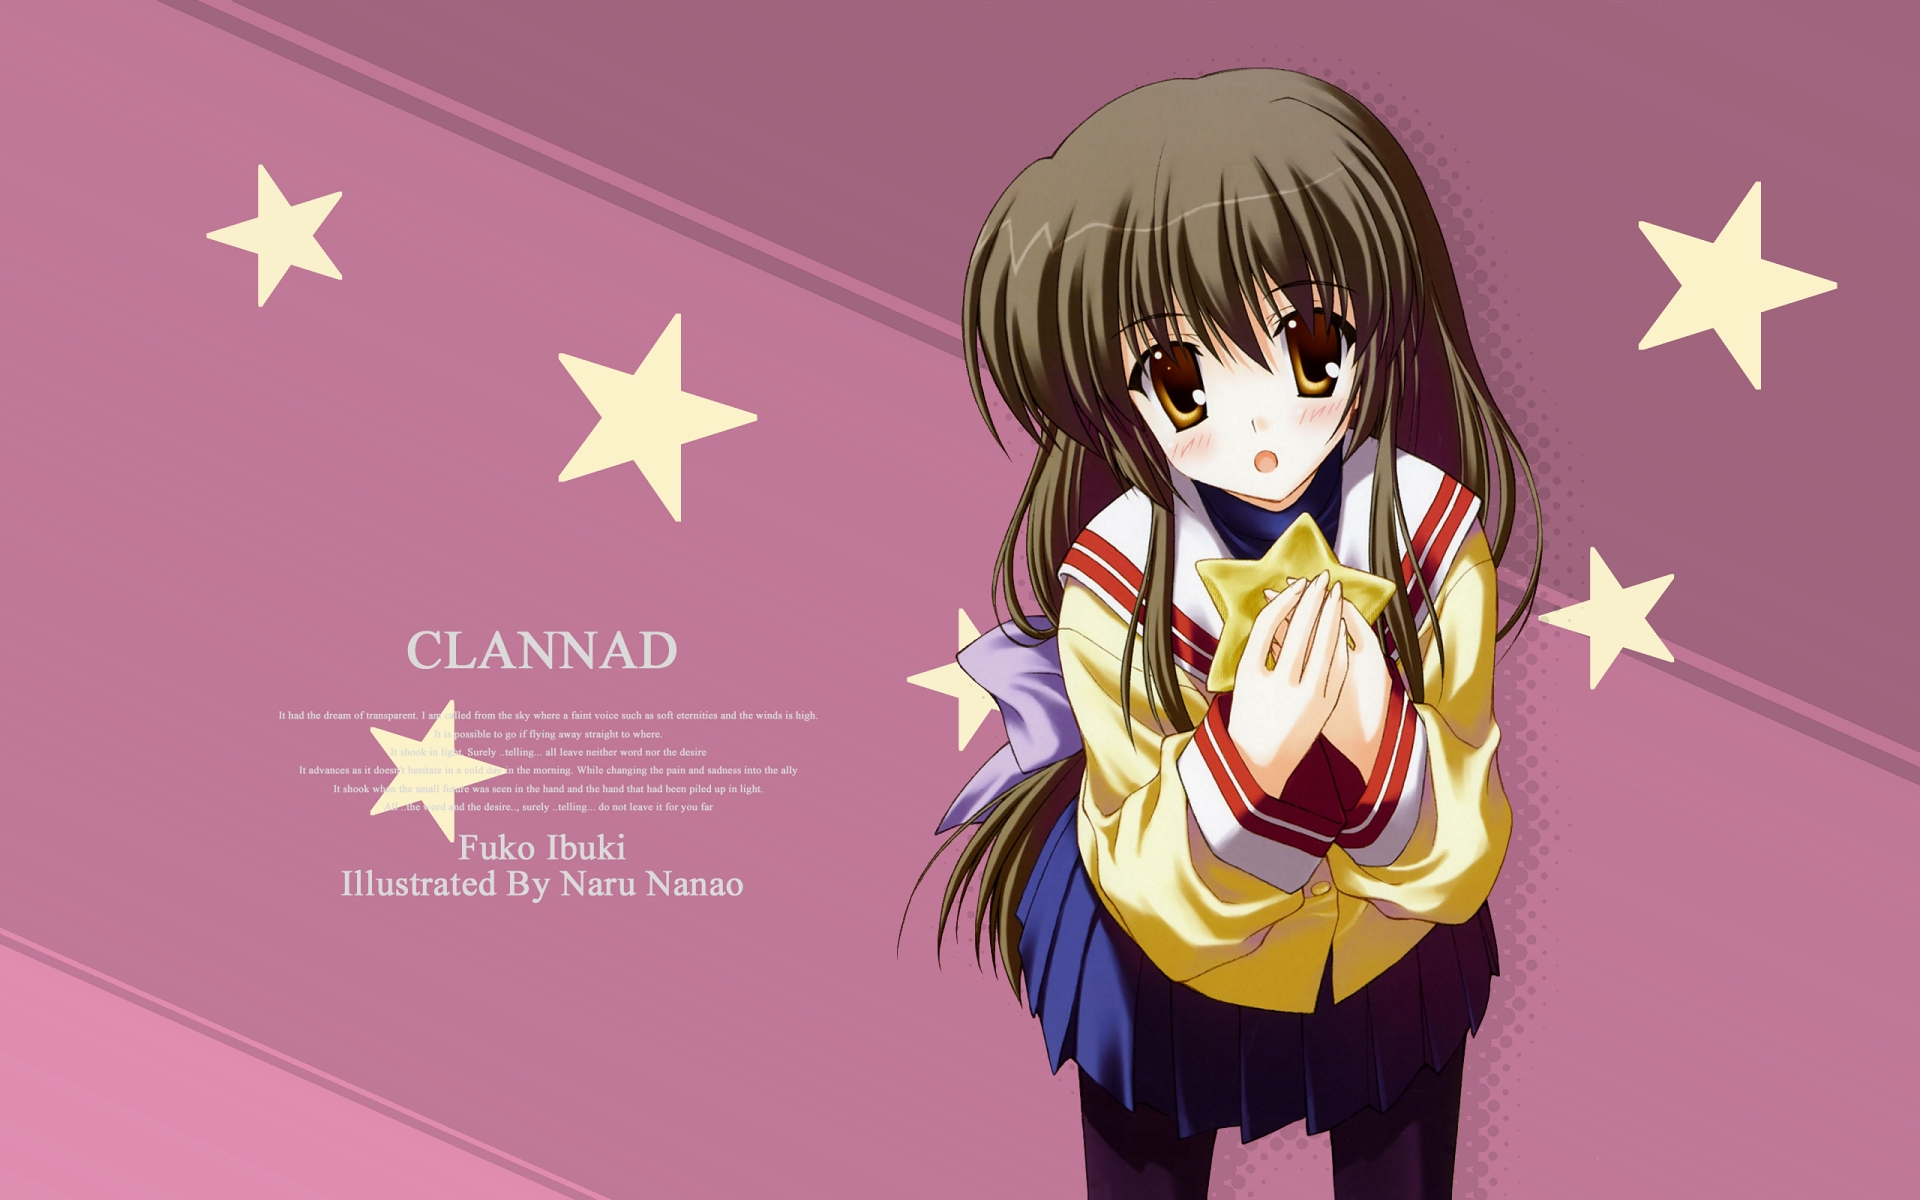 Clannad Anime 11 Background Wallpaper   Hivewallpapercom 1920x1200